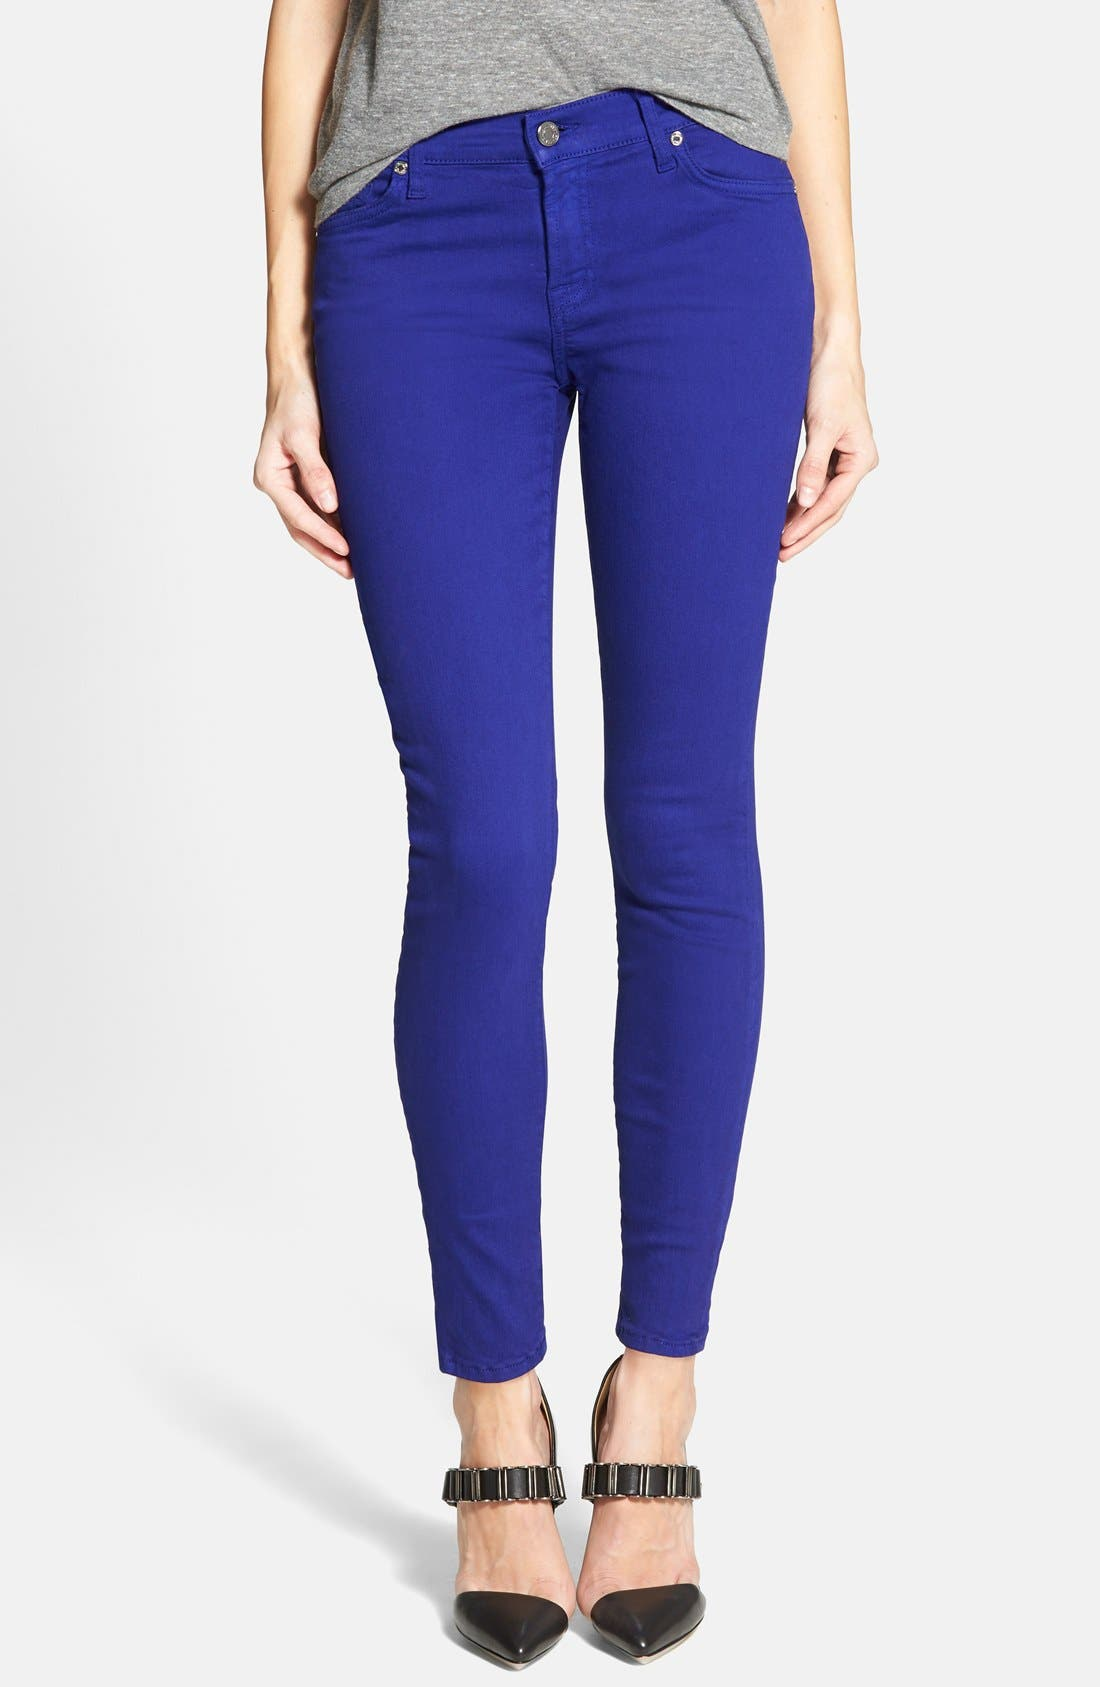 Alternate Image 1 Selected - 7 For All Mankind® 'The Ankle Skinny' Jeans (Monaco Purple)